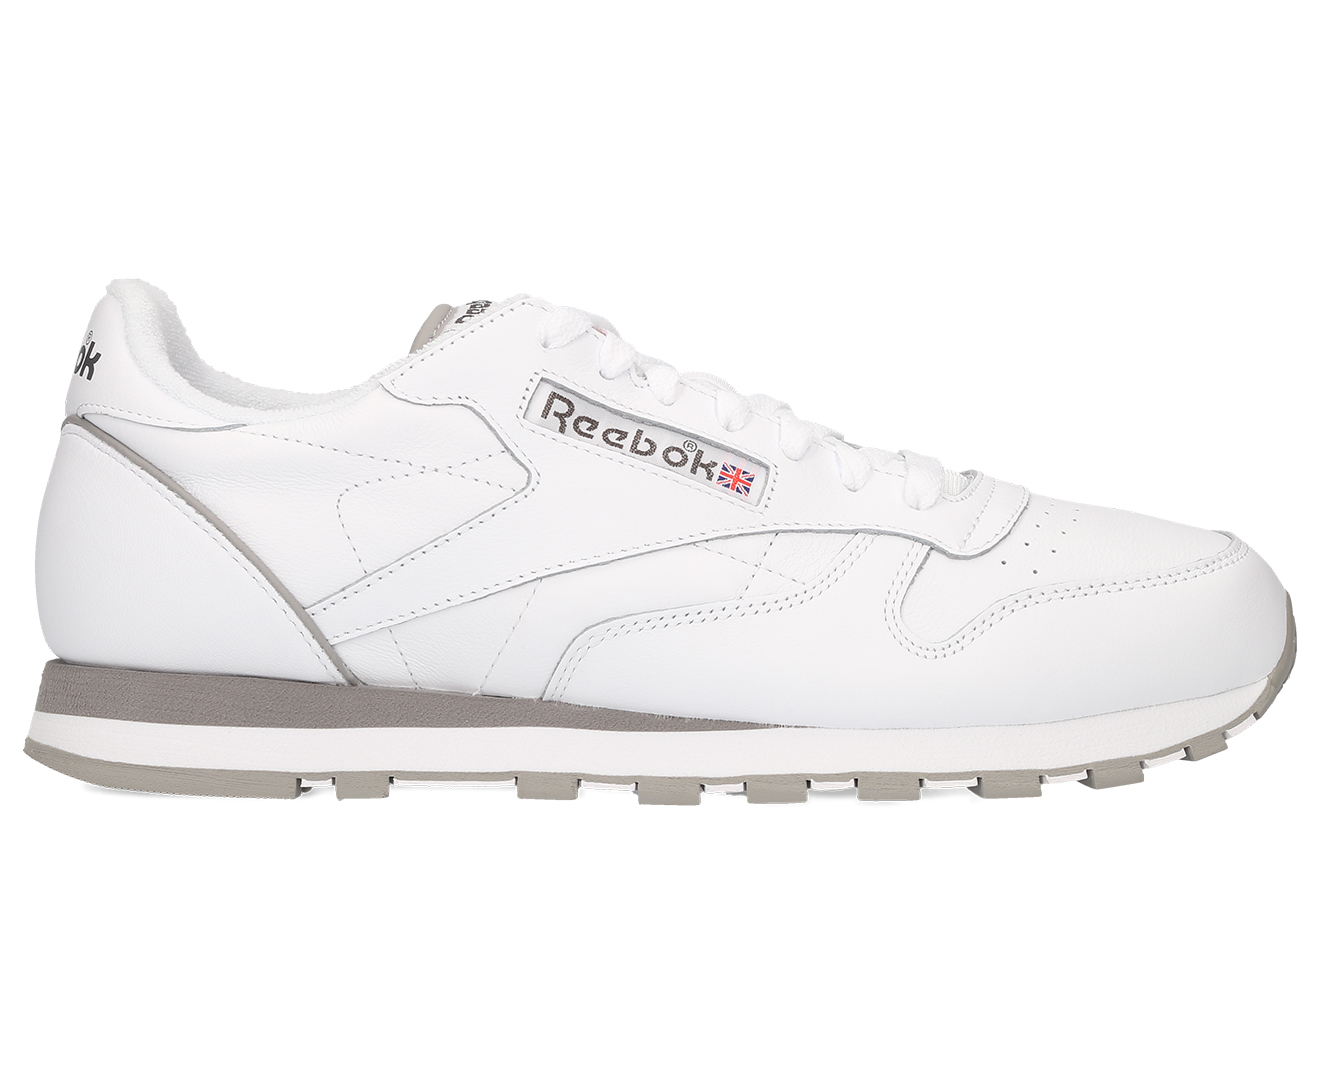 a60cc71ac15 Reebok Men s Classic Leather Archive Shoe - White Carbon Red Grey ...